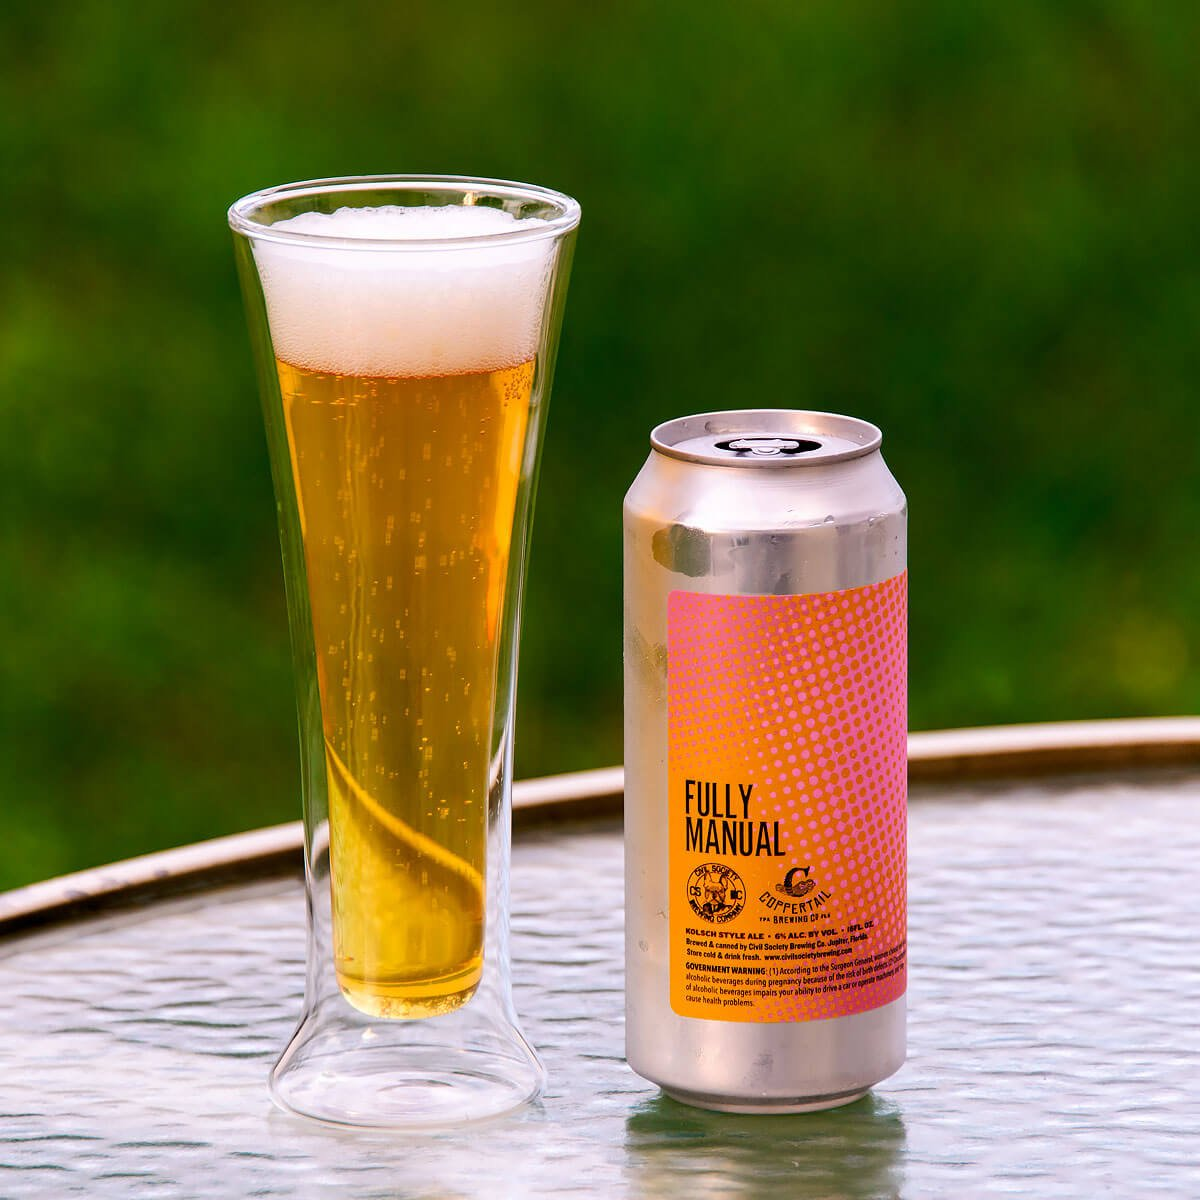 Fully Manual, a German-style Kölsch collaboratively brewed by Civil Society Brewing Co. and Coppertail Brewing Co.